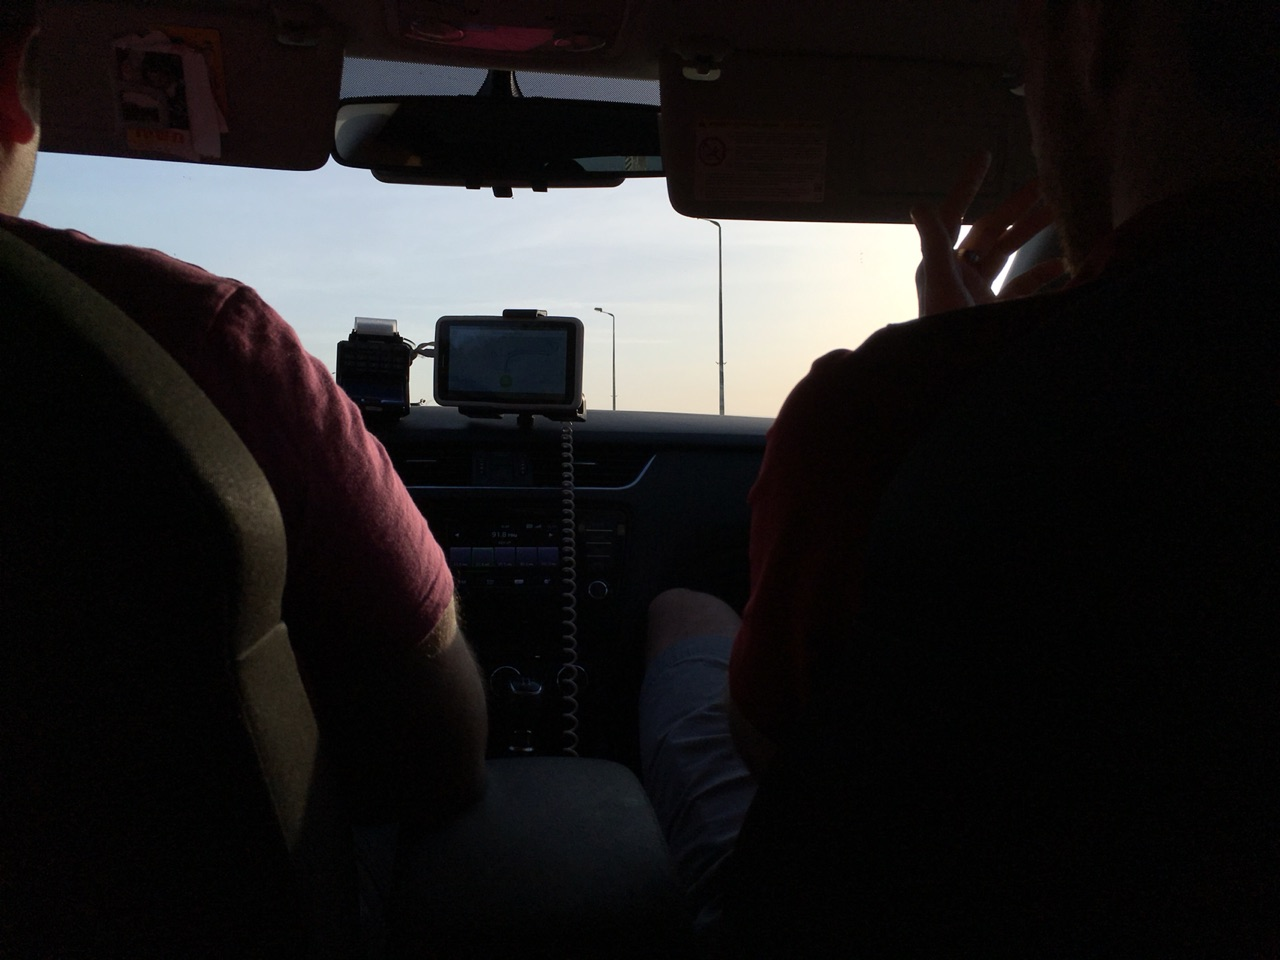 Inside the taxi to the airport to fetch cars to...